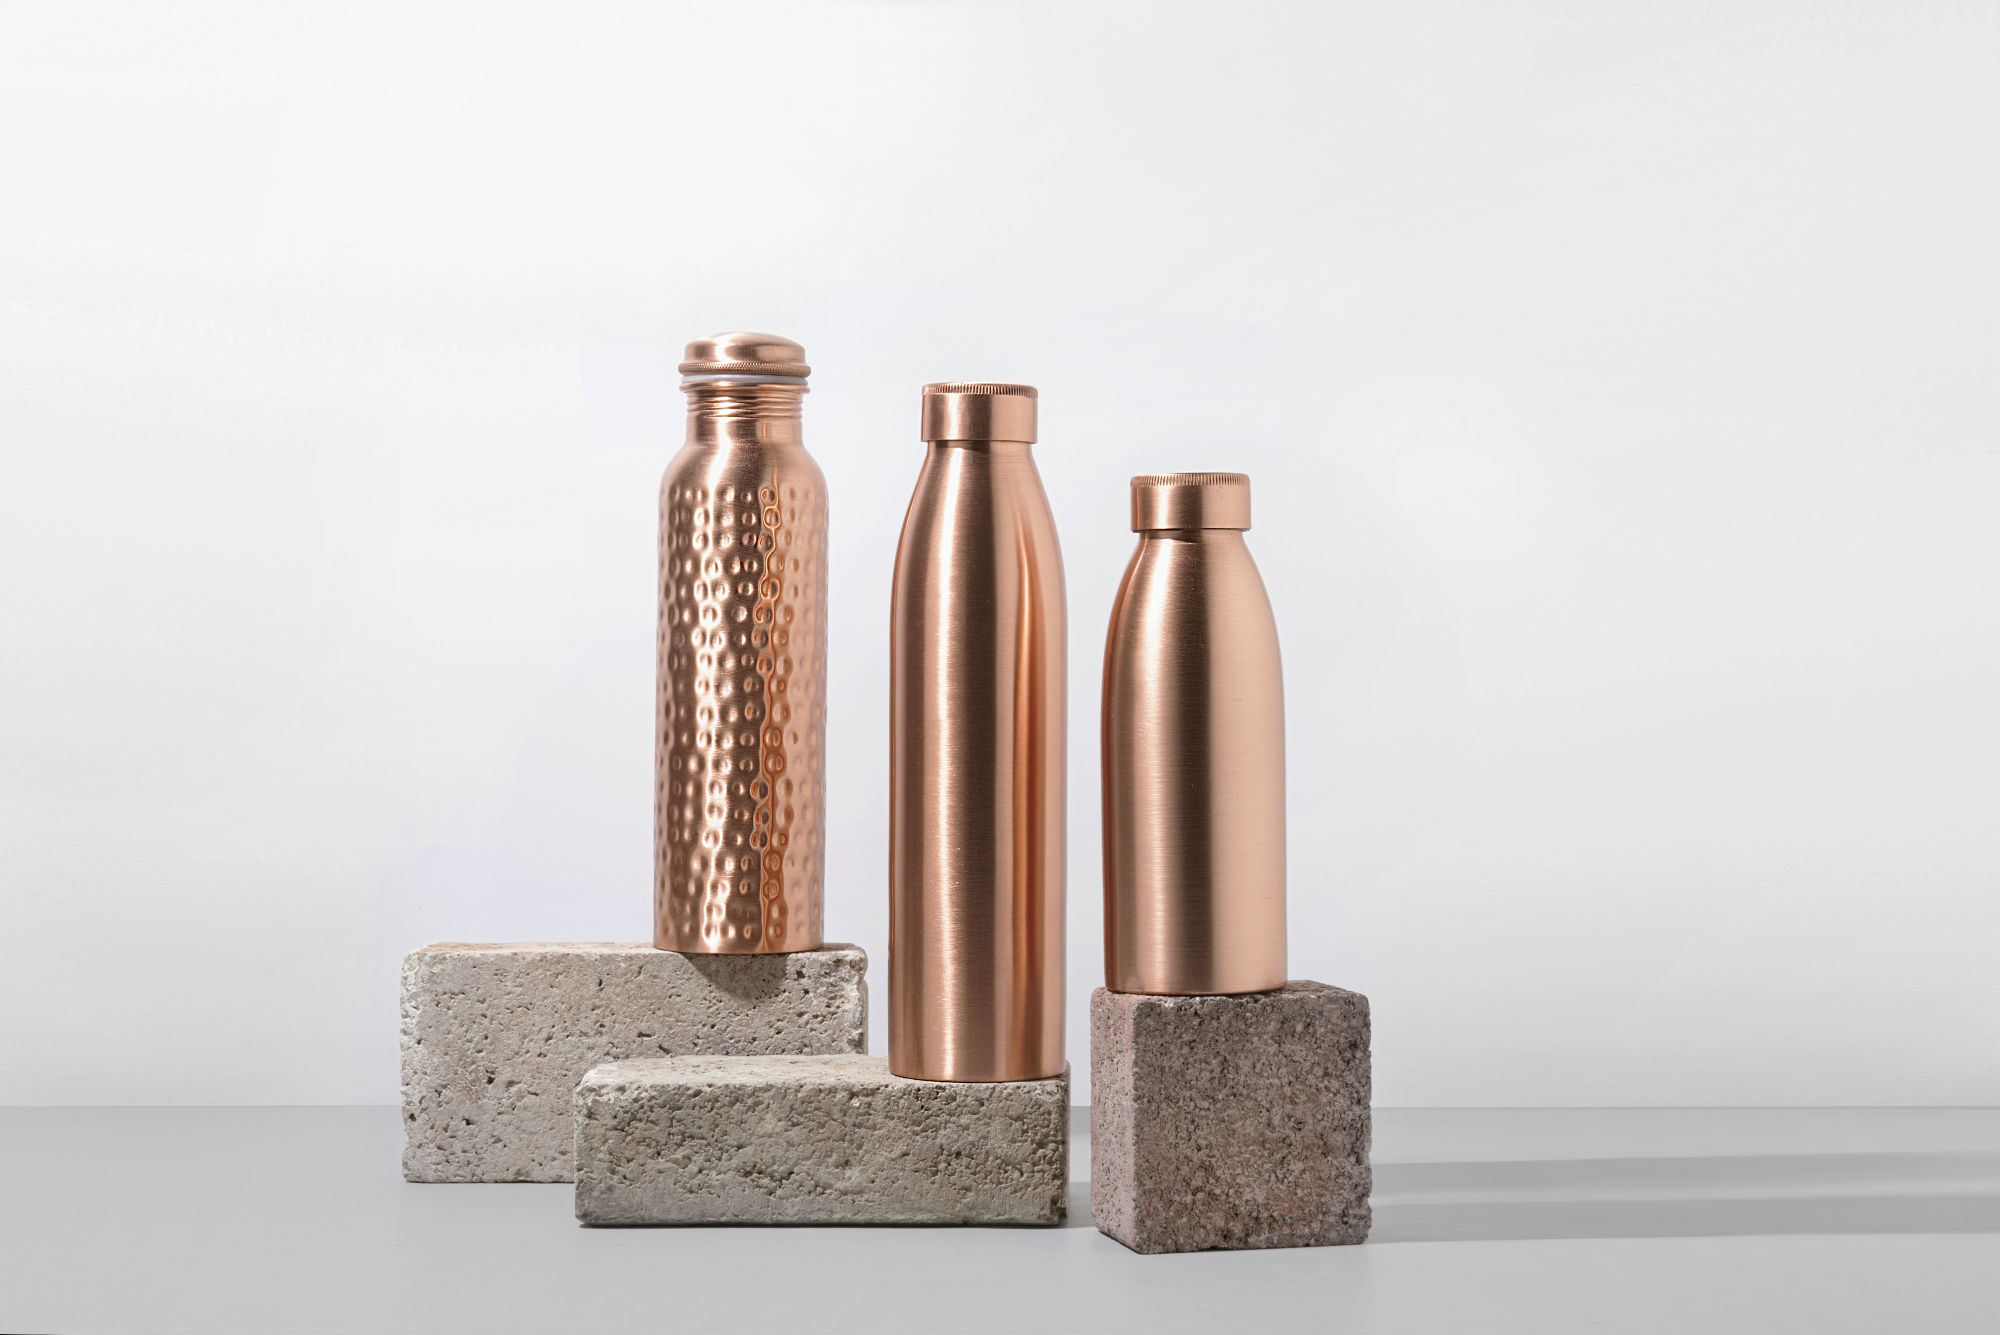 The copper water bottles not only alkalise the water and are better for the environment, but support small family ru